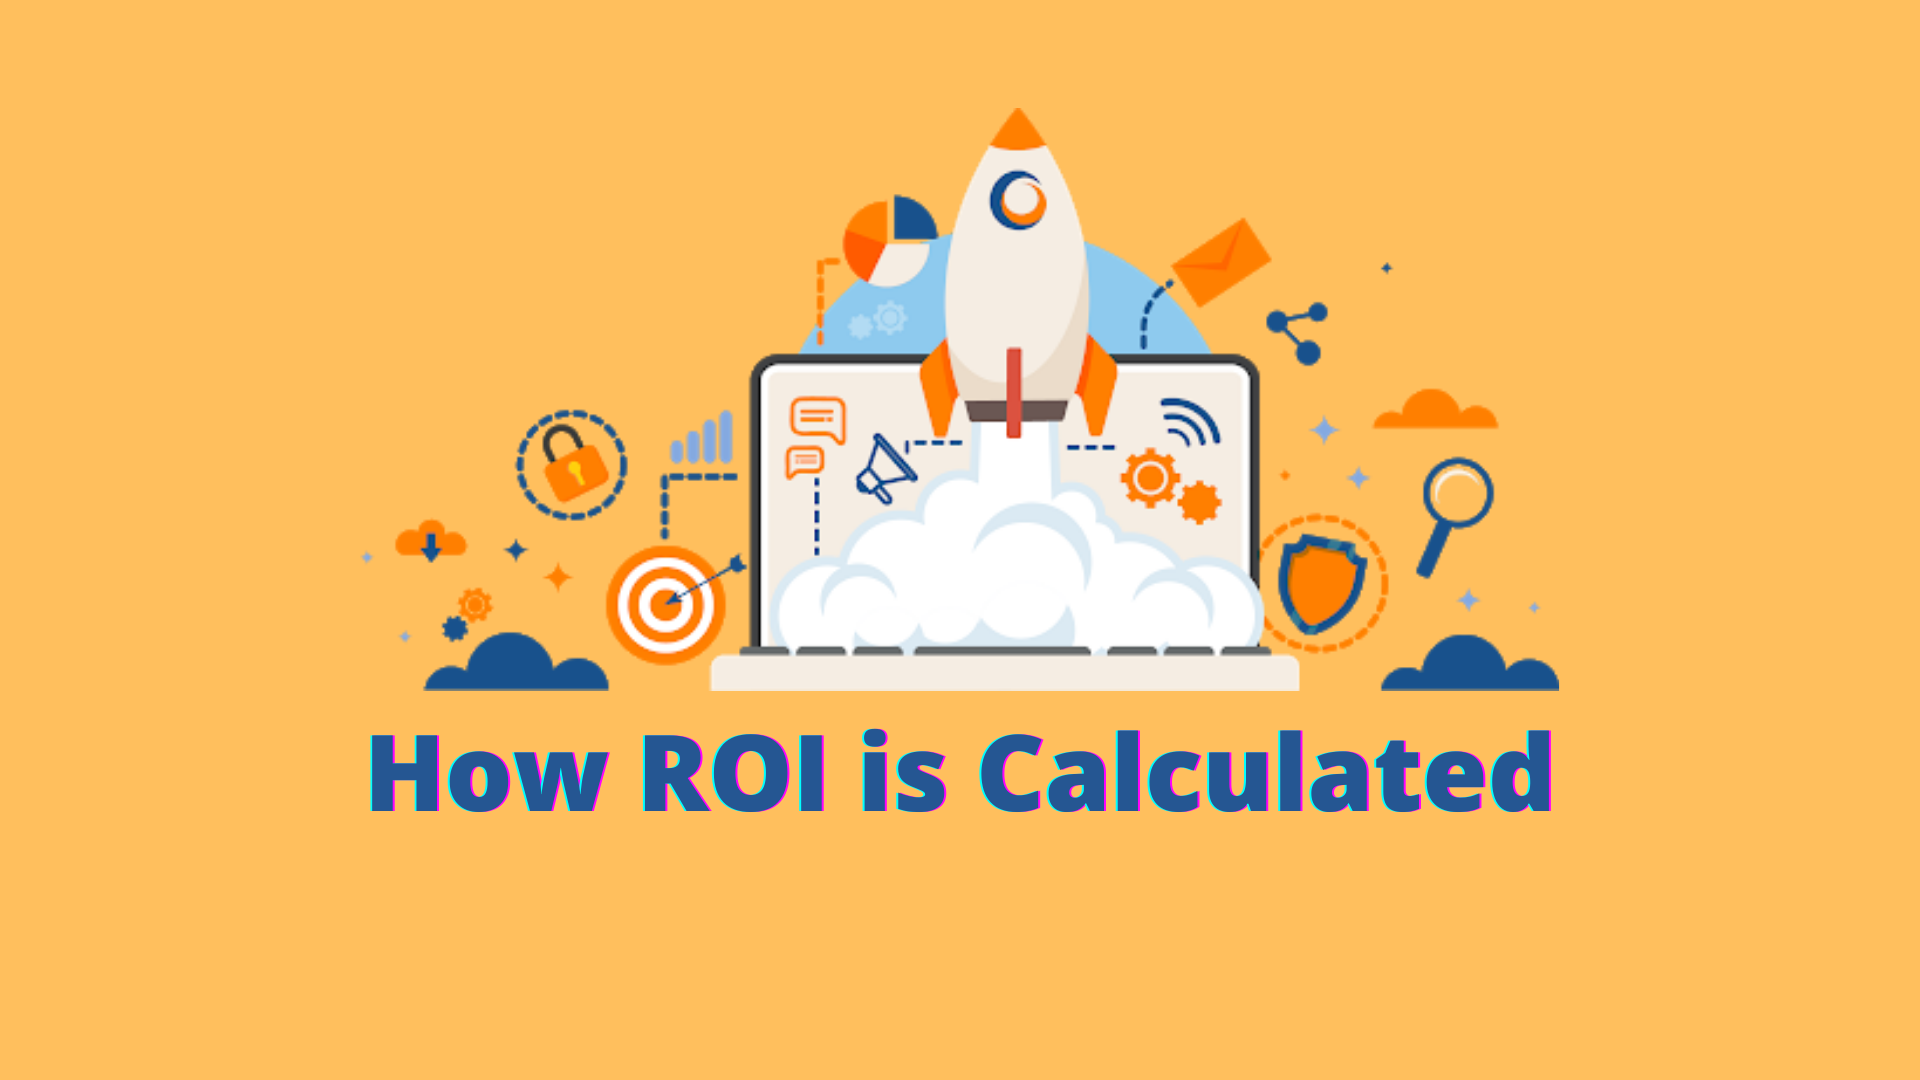 How ROI is Calculated